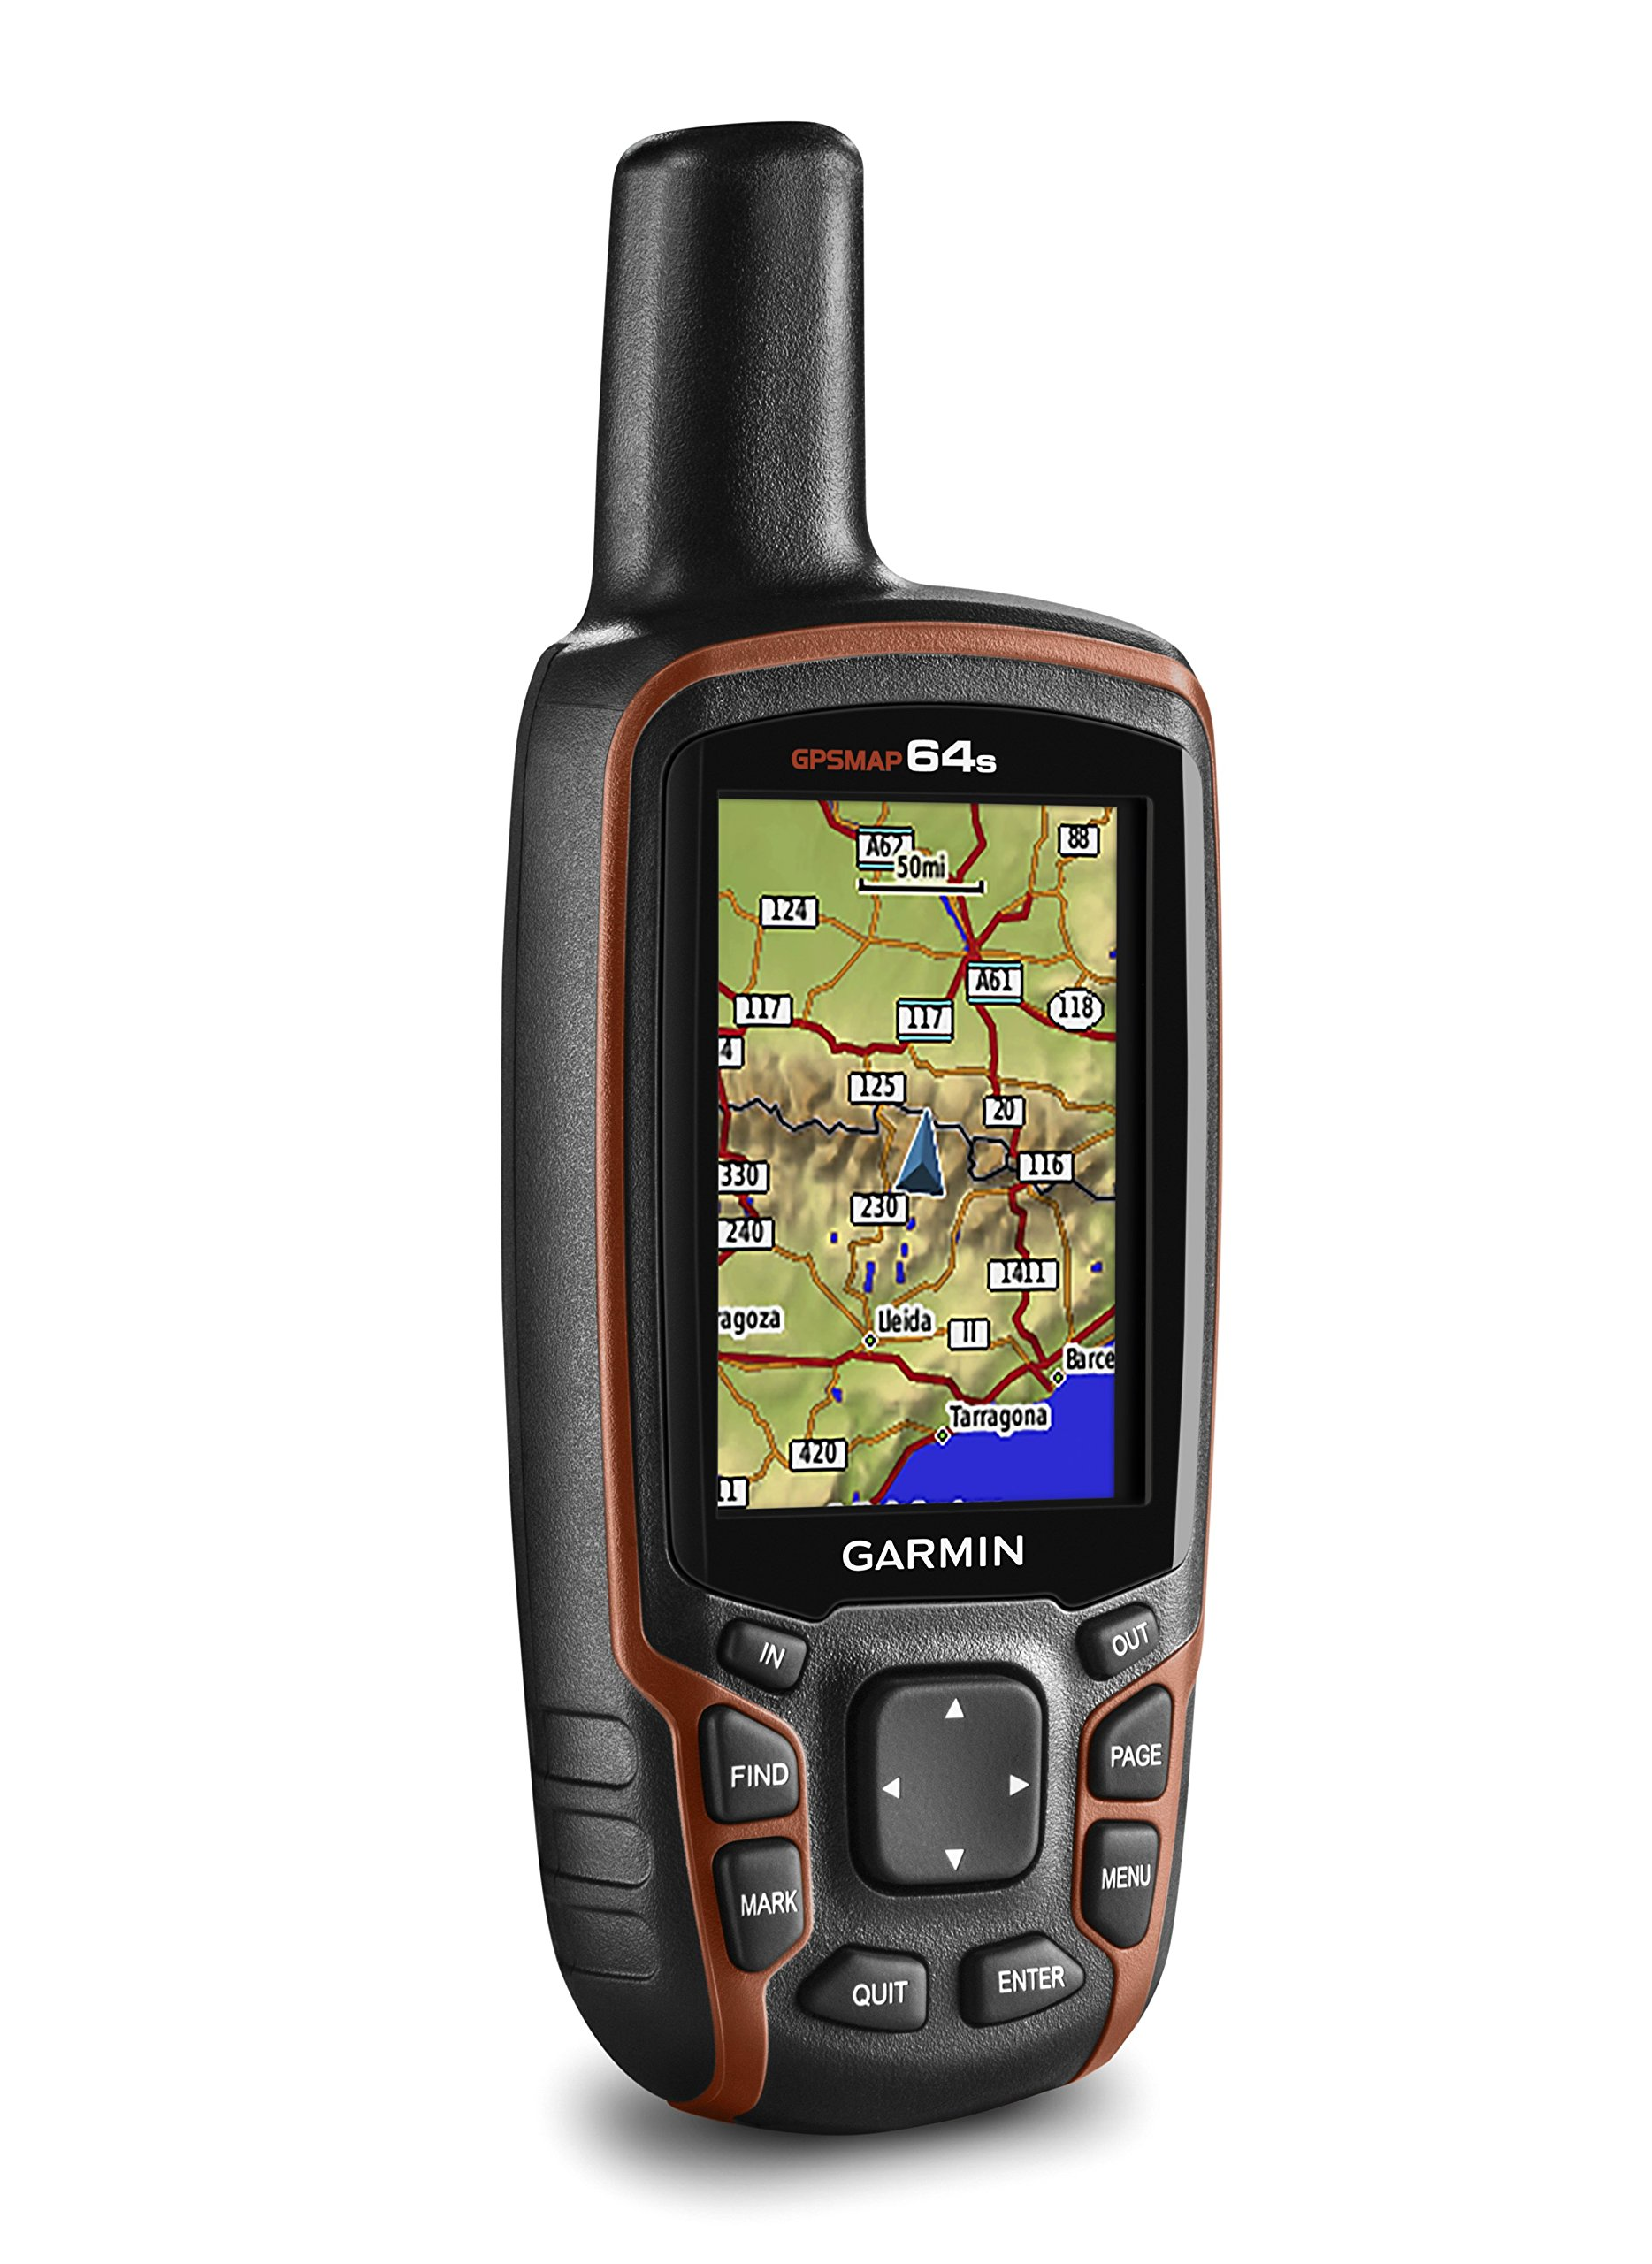 Garmin GPSMAP 64s Handheld Navigator,Black/Red 8